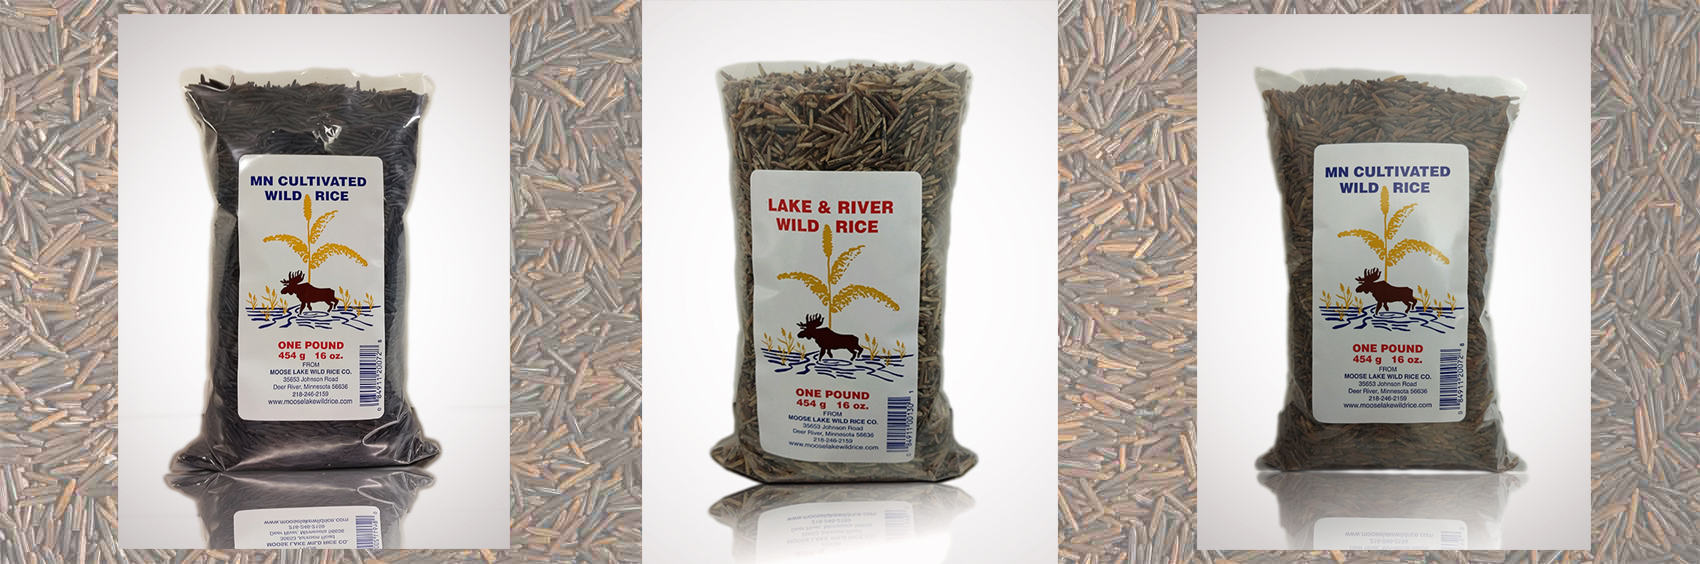 Shop for authentic lake and river wild rice from Minnesota and Canada